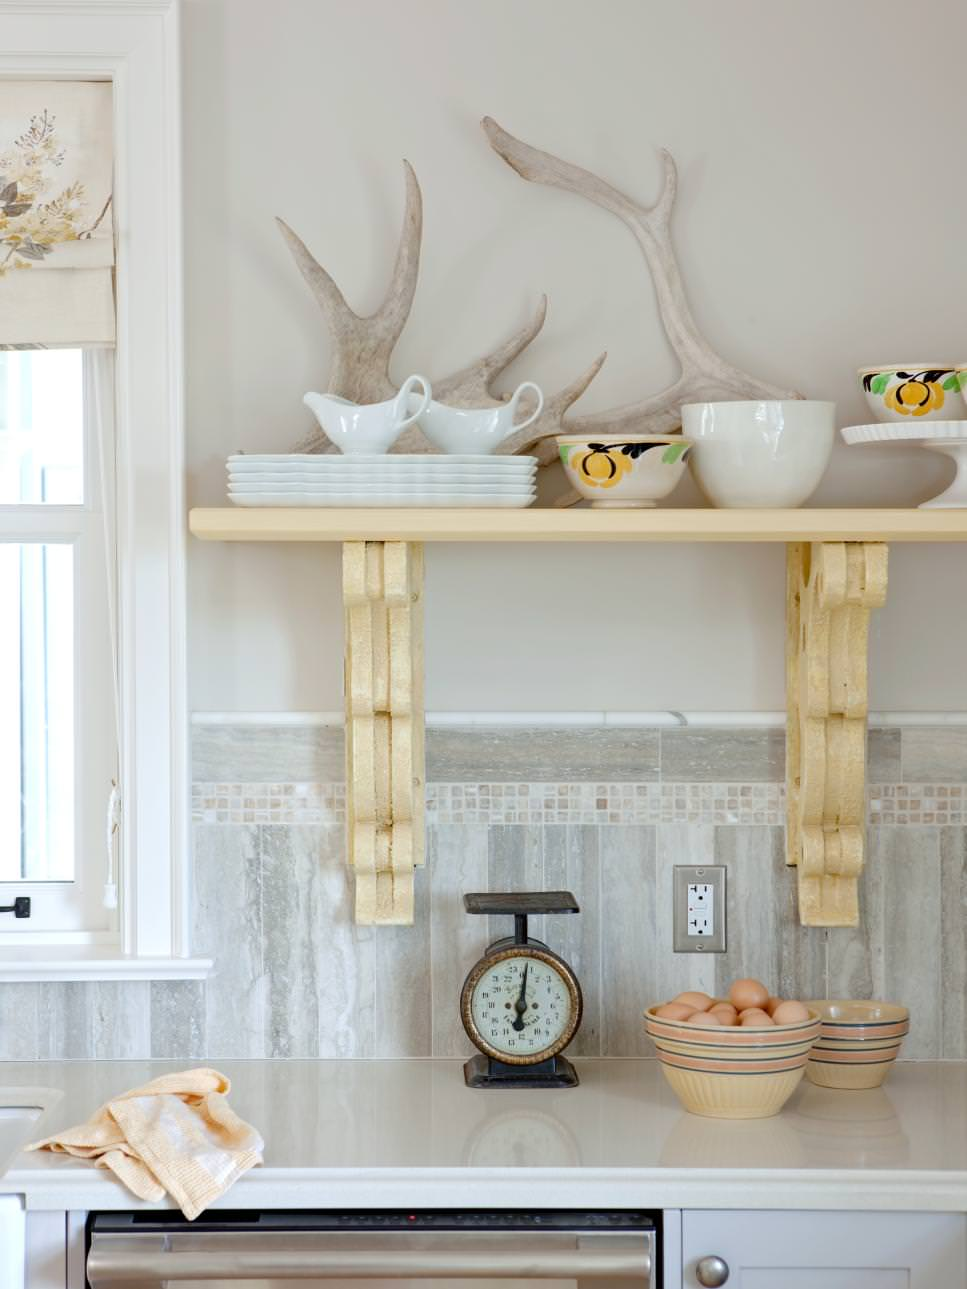 White Rustic Kitchen With Yellow Shelf